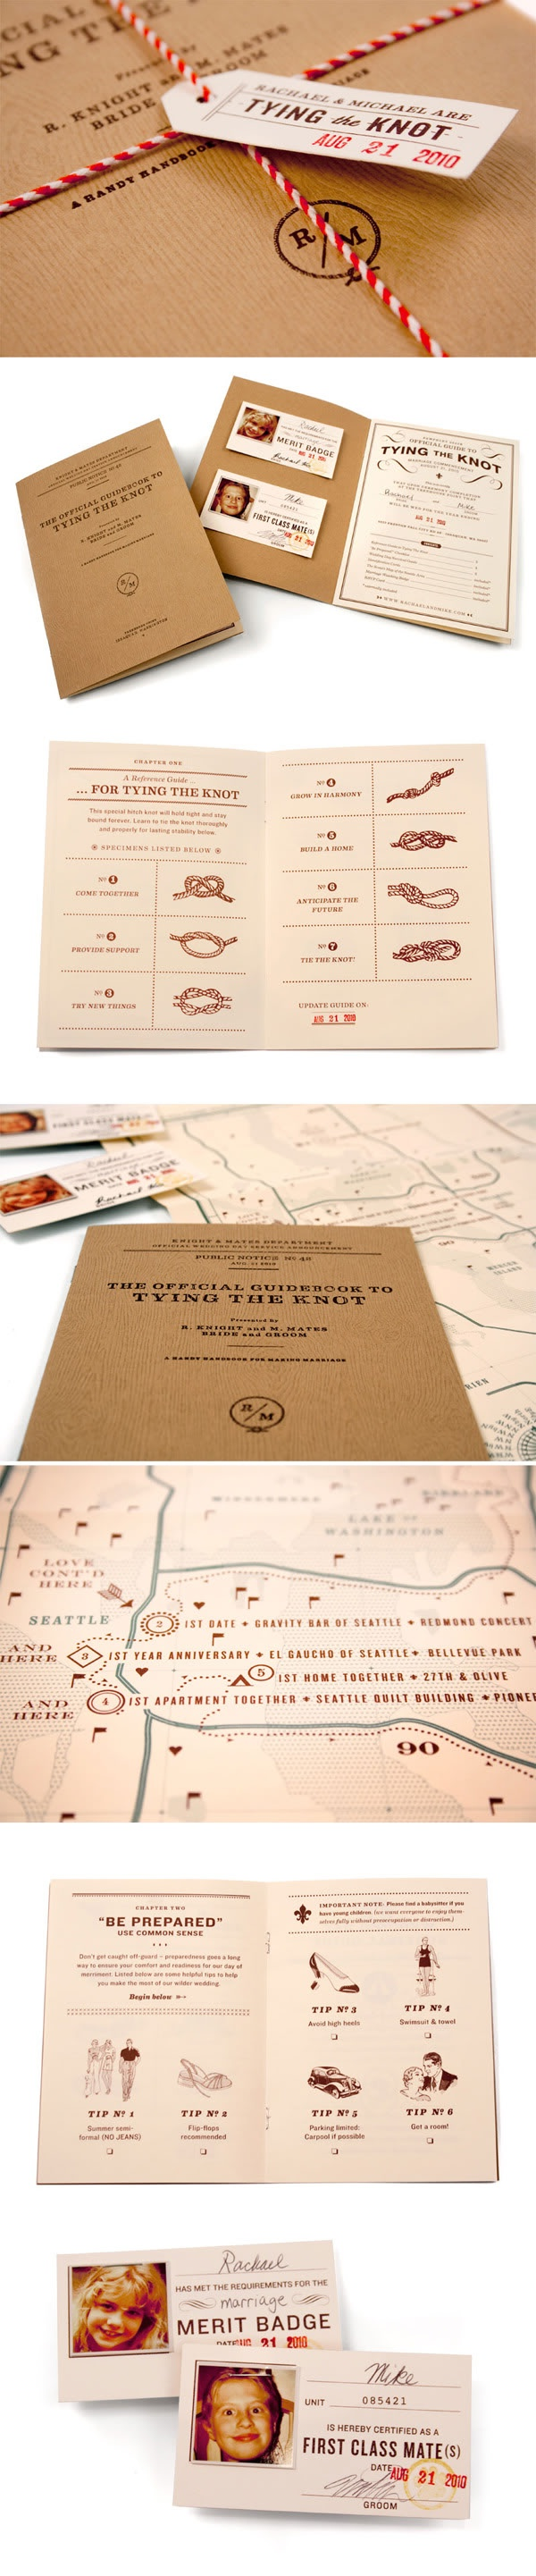 The most creative incredible invitation I have seen ever! The art of tying the knot...